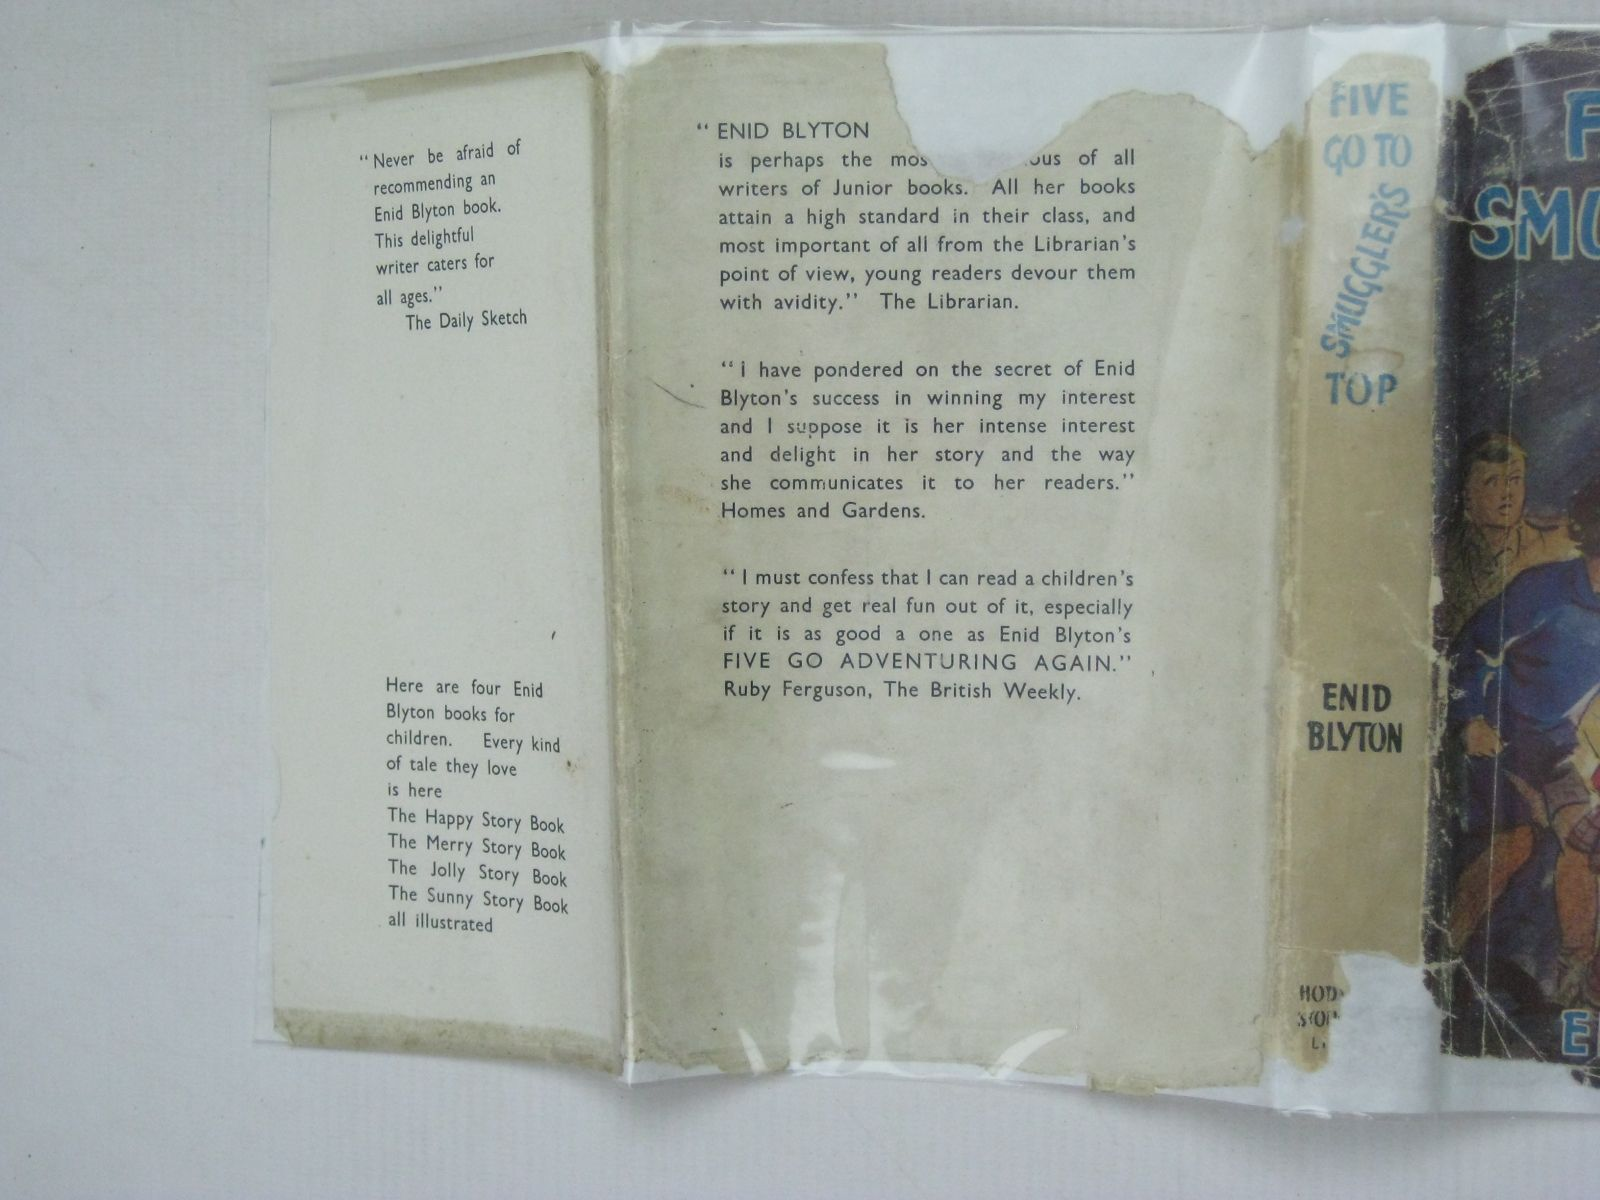 Photo of FIVE GO TO SMUGGLER'S TOP written by Blyton, Enid illustrated by Soper, Eileen published by Hodder & Stoughton (STOCK CODE: 1506249)  for sale by Stella & Rose's Books